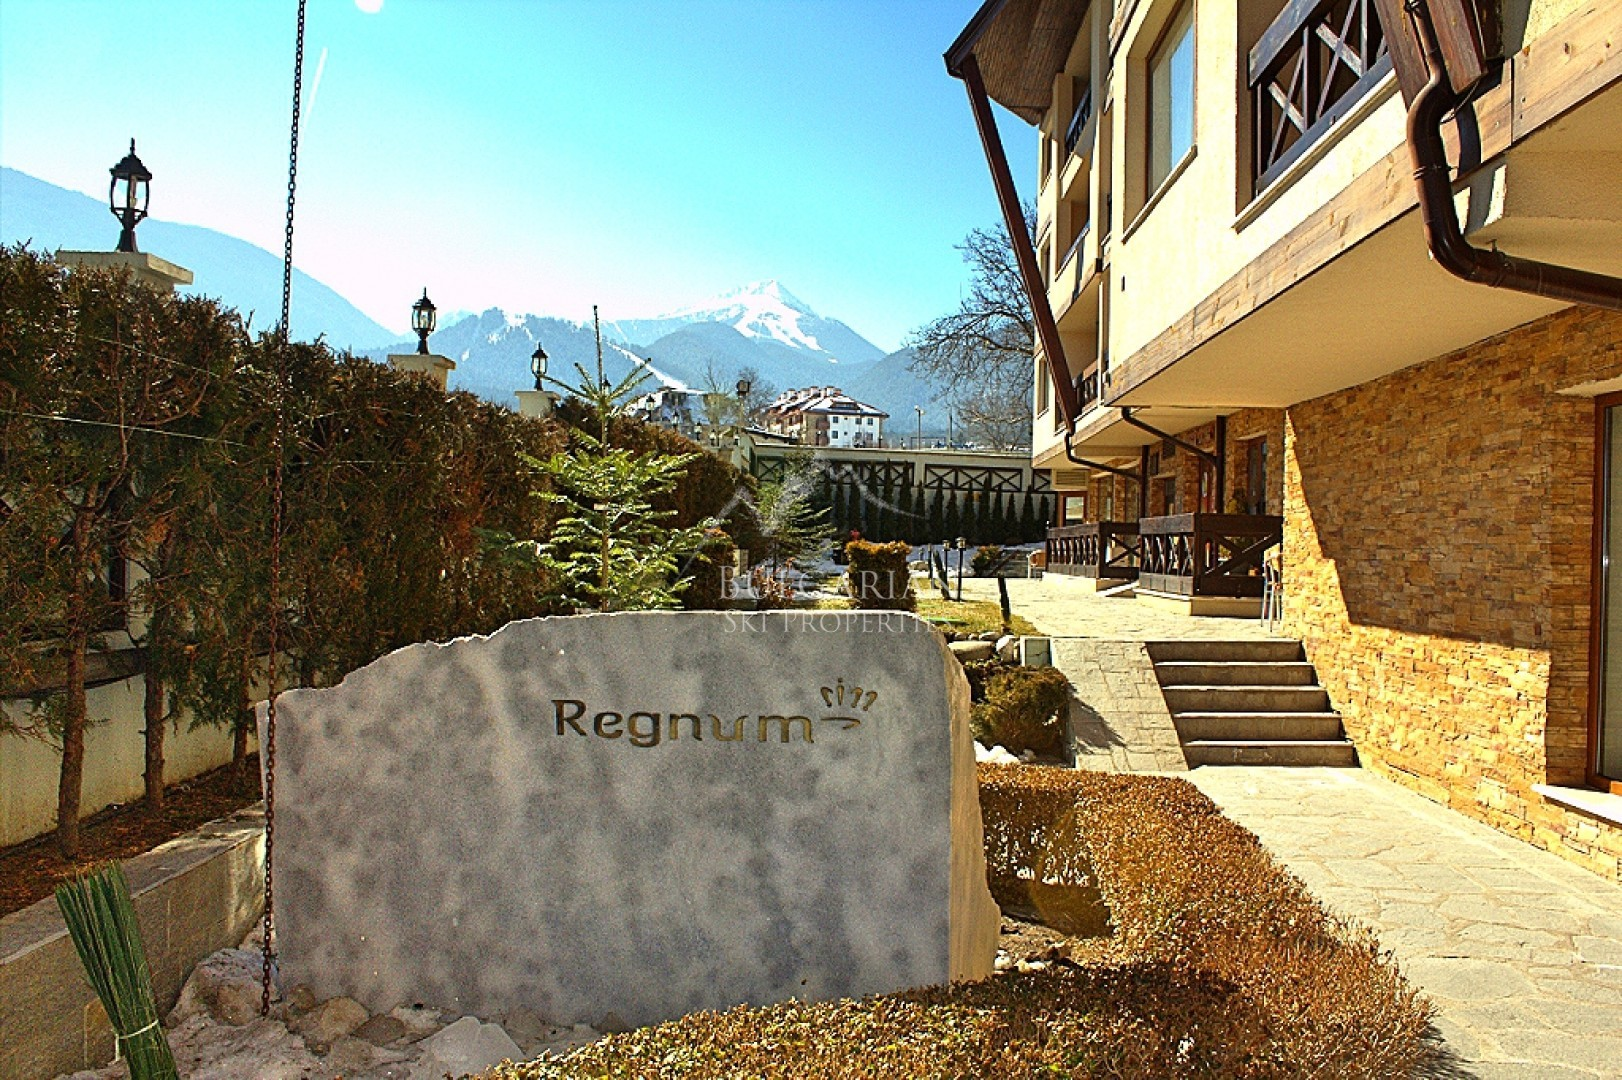 Regnum Hotel, Bansko: one-bedroom apartment for sale